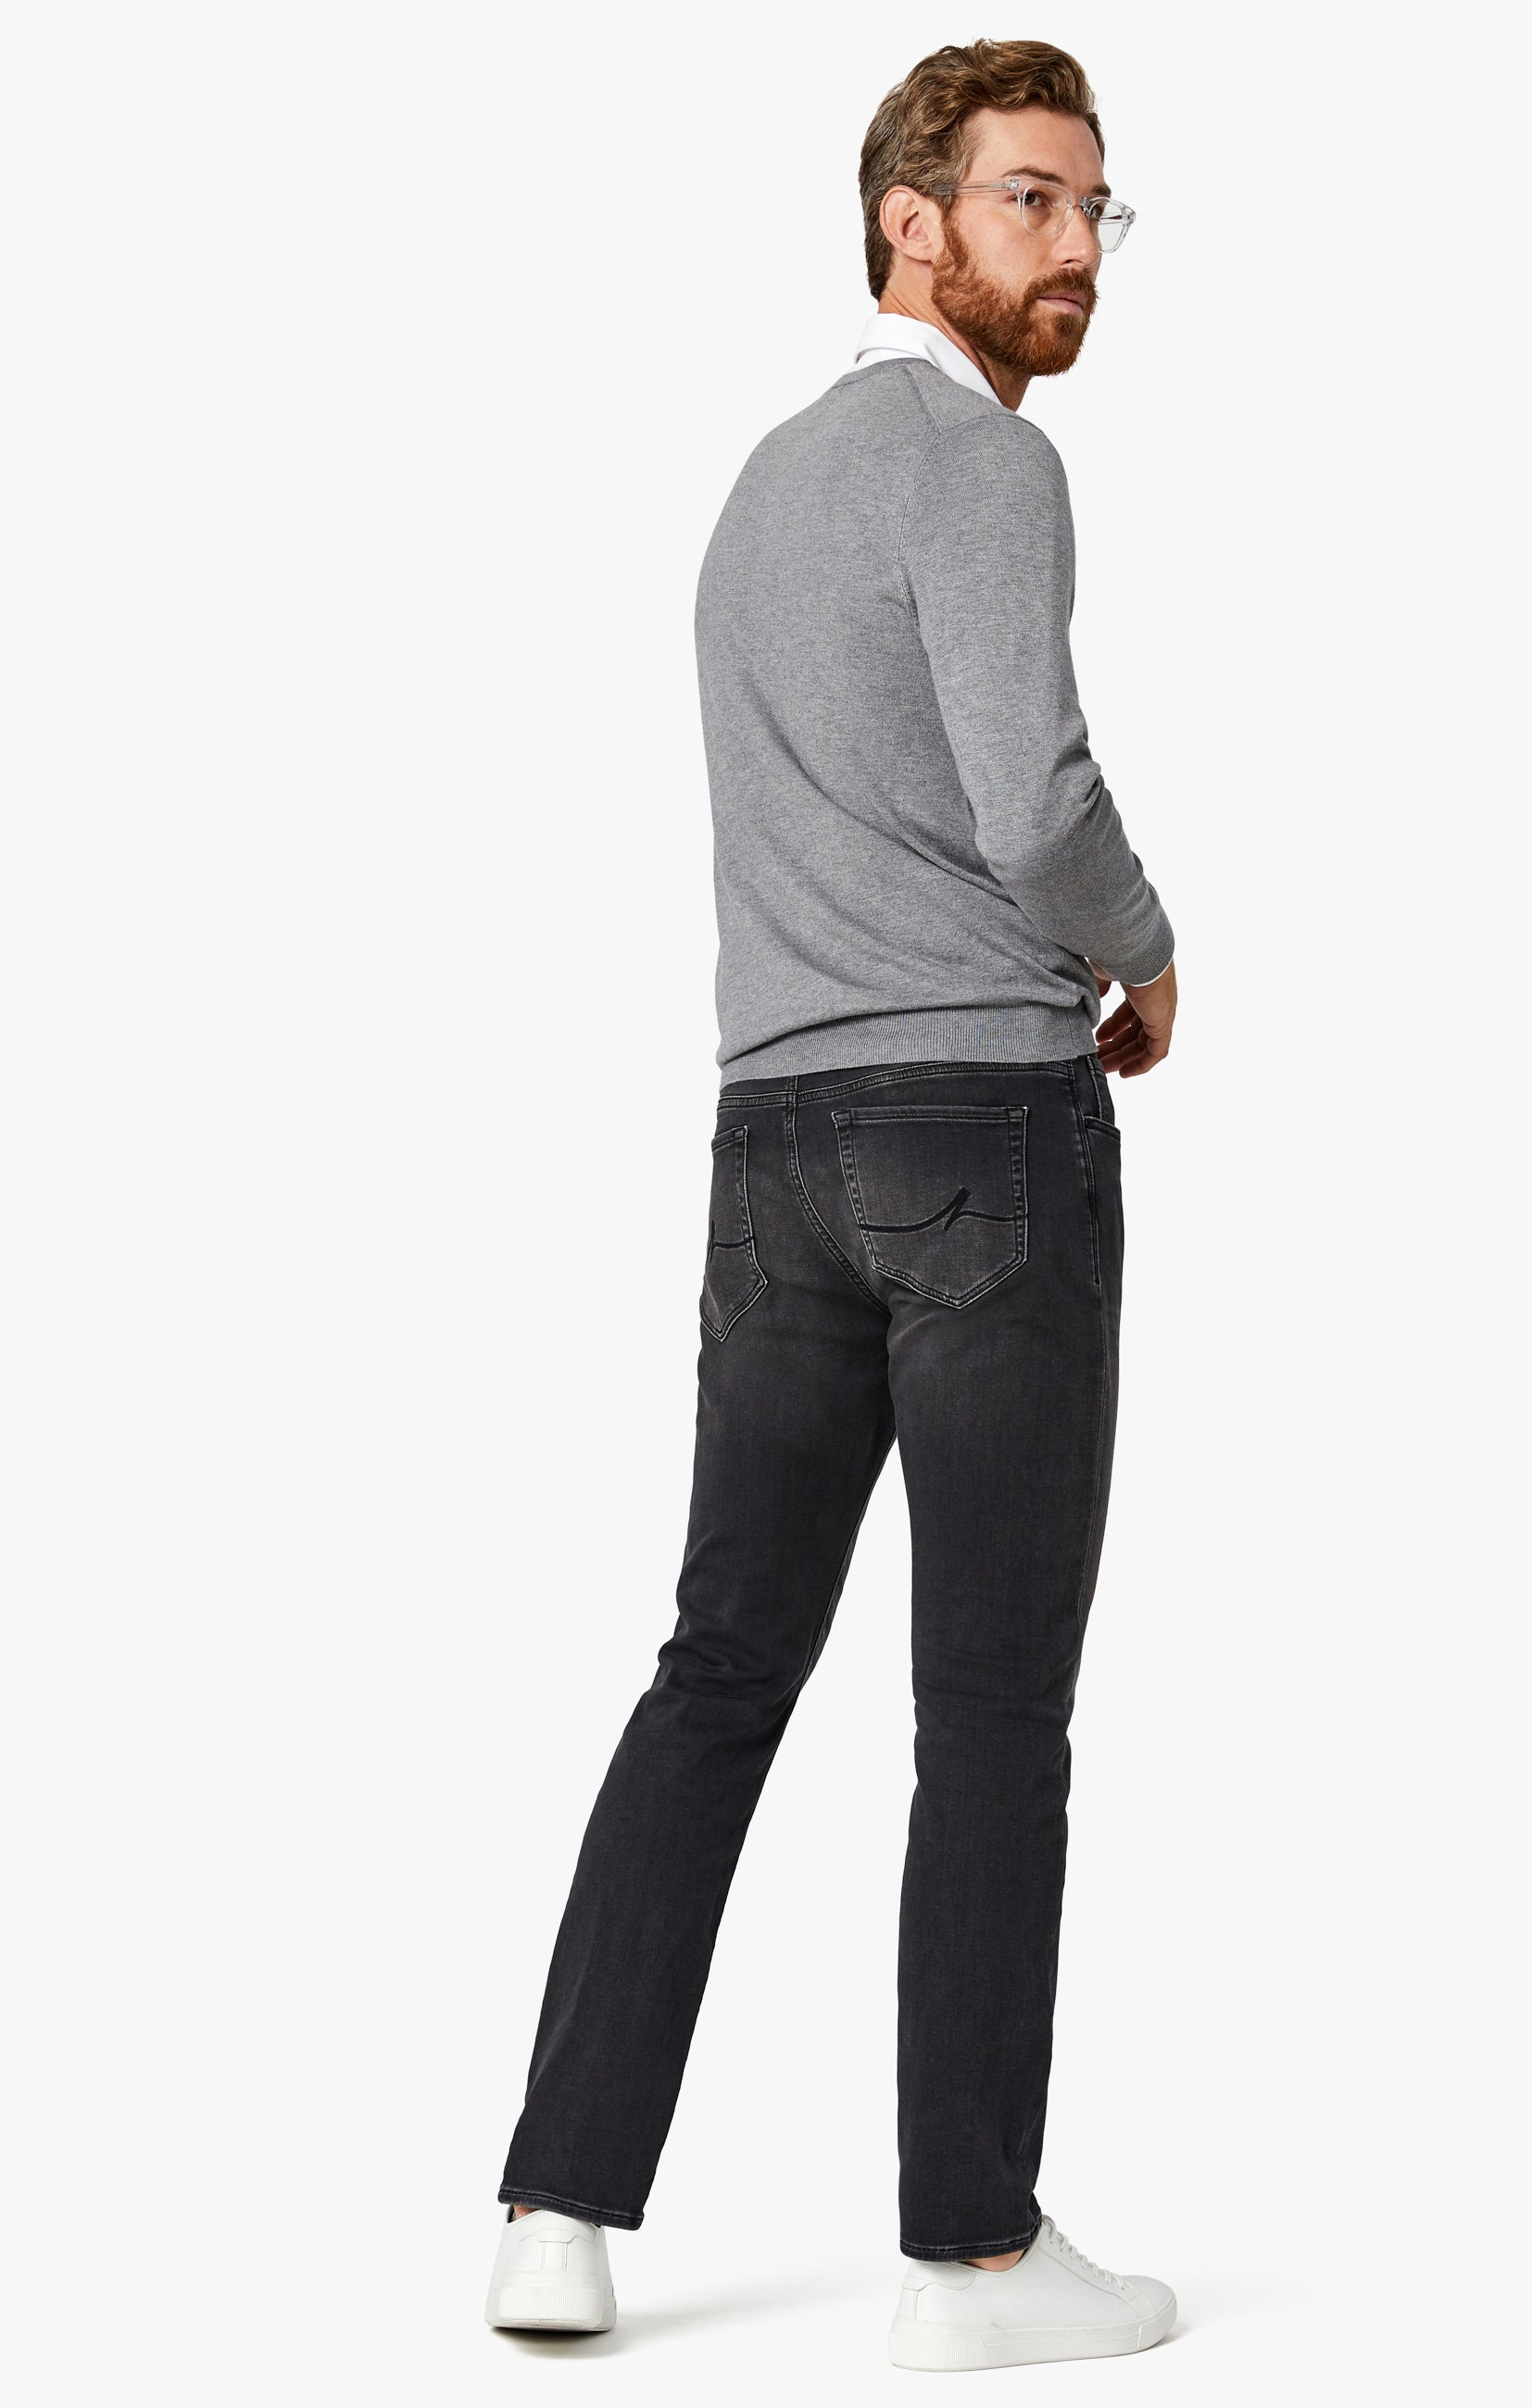 Courage Straight Leg Jeans in Mid Smoke Smart Casual Image 9